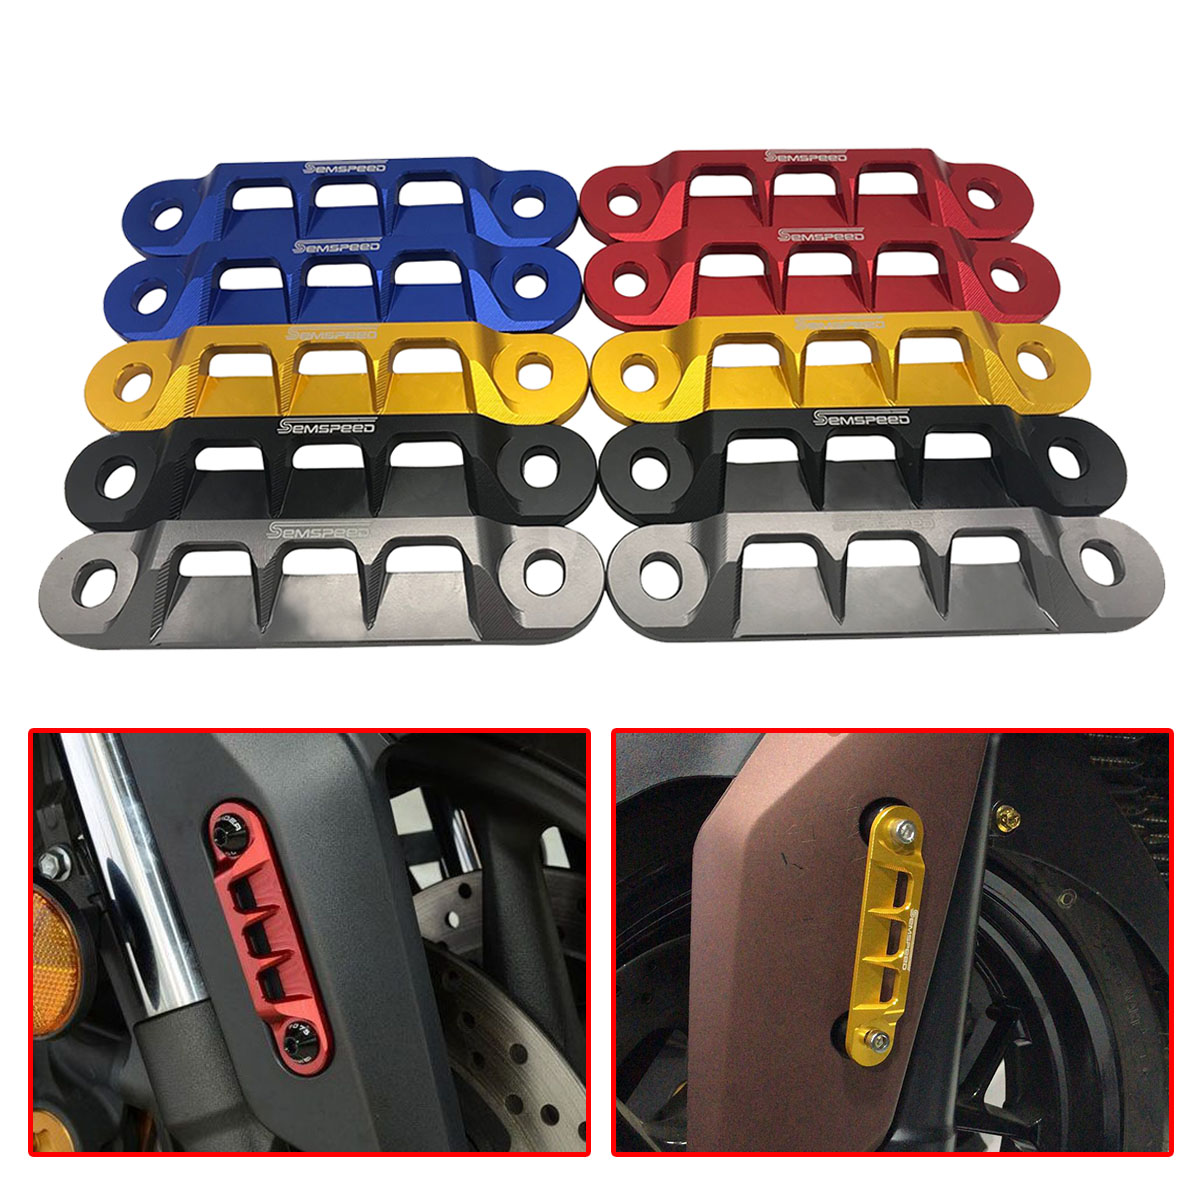 Motorcycle Accessories For Yamaha X-MAX Xmax 300 400 XMAX300 250 125 400 2017 2018 2019 Front Axle Coper Plate Decorative Cover